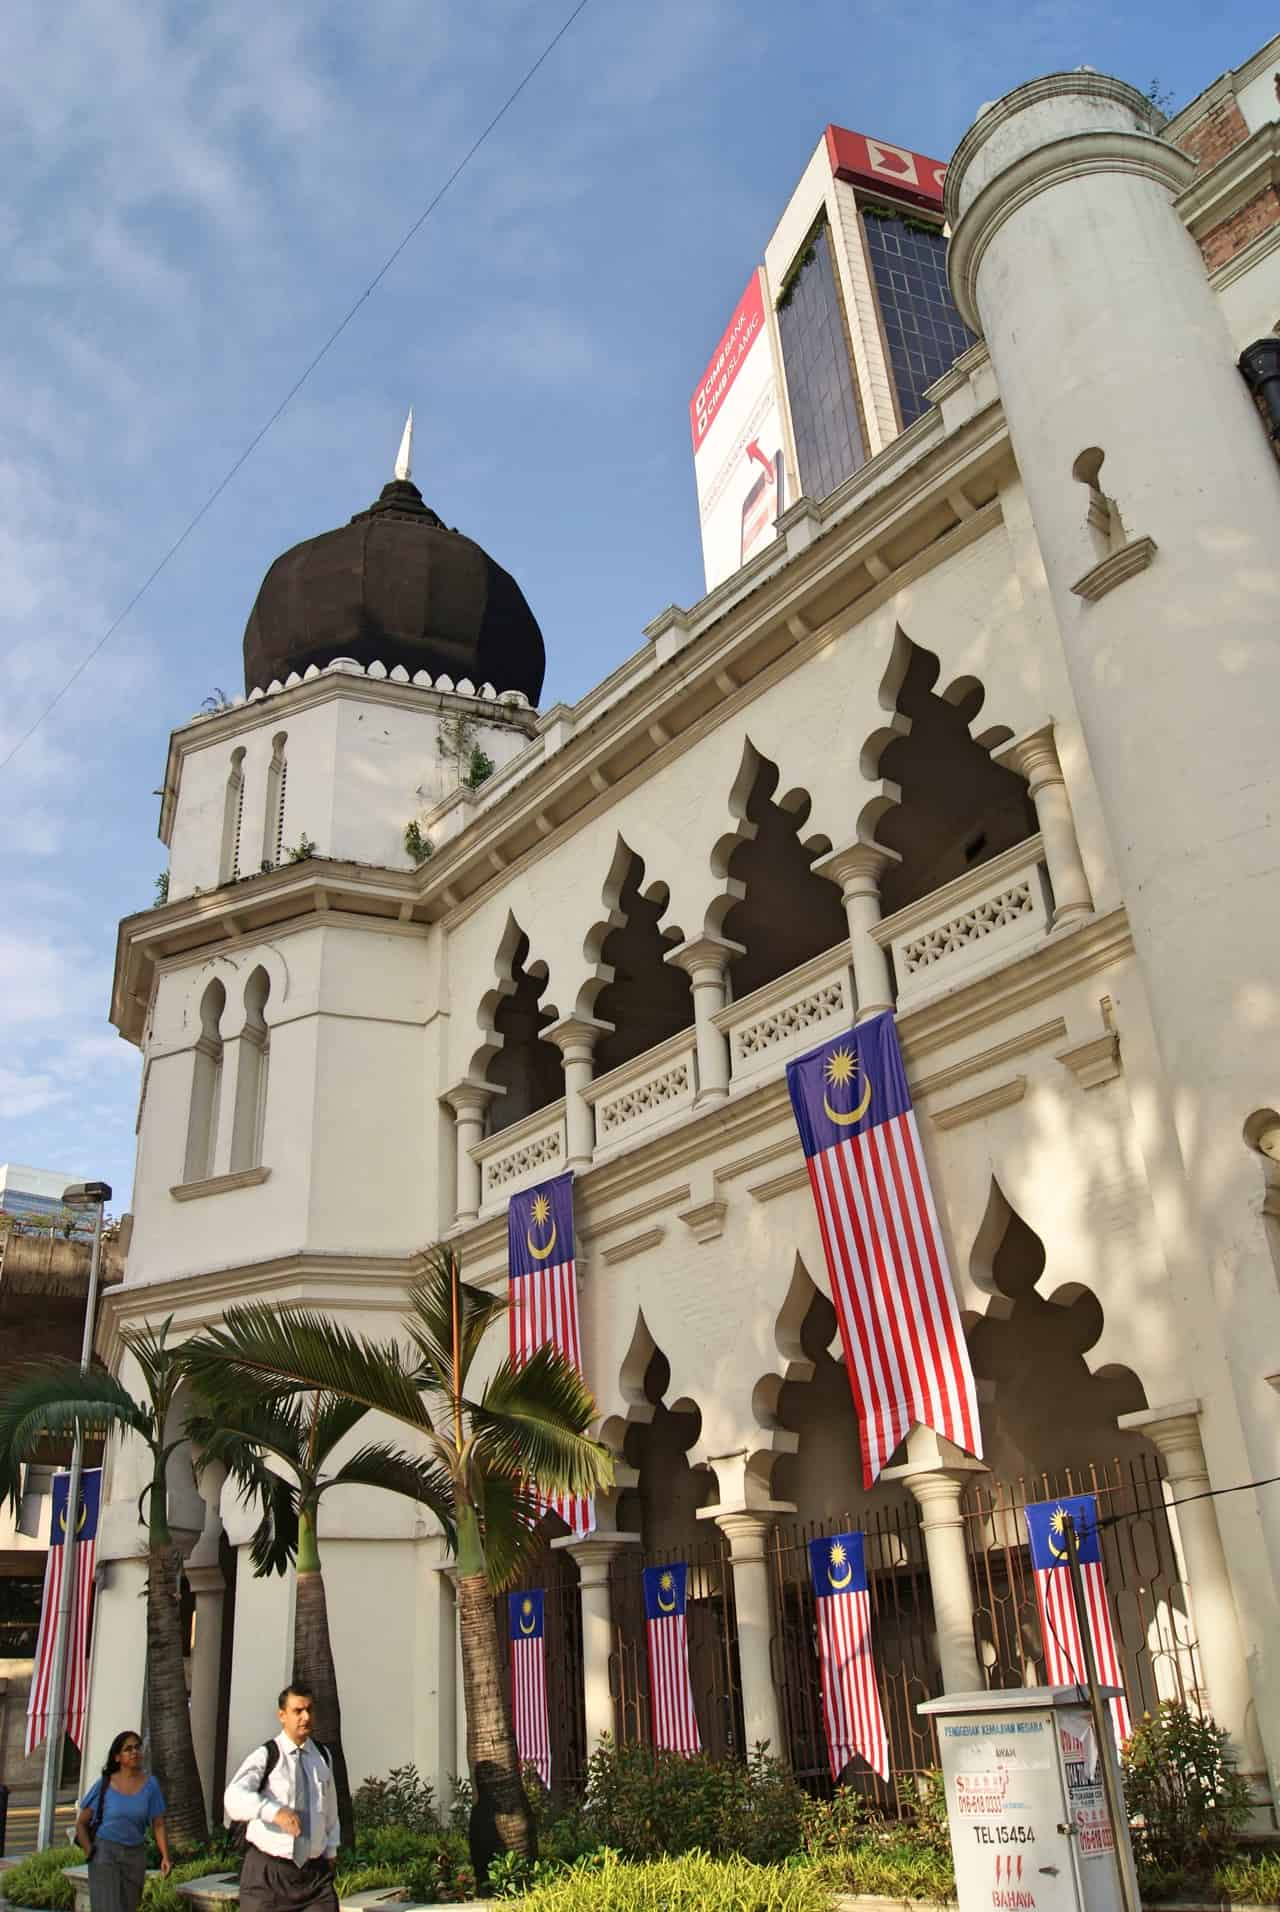 Old-Survey-Office-Building-Sessions-&-Magistrates-Court-Kuala-Lumpur-Malaysia ] Travel Mermaid